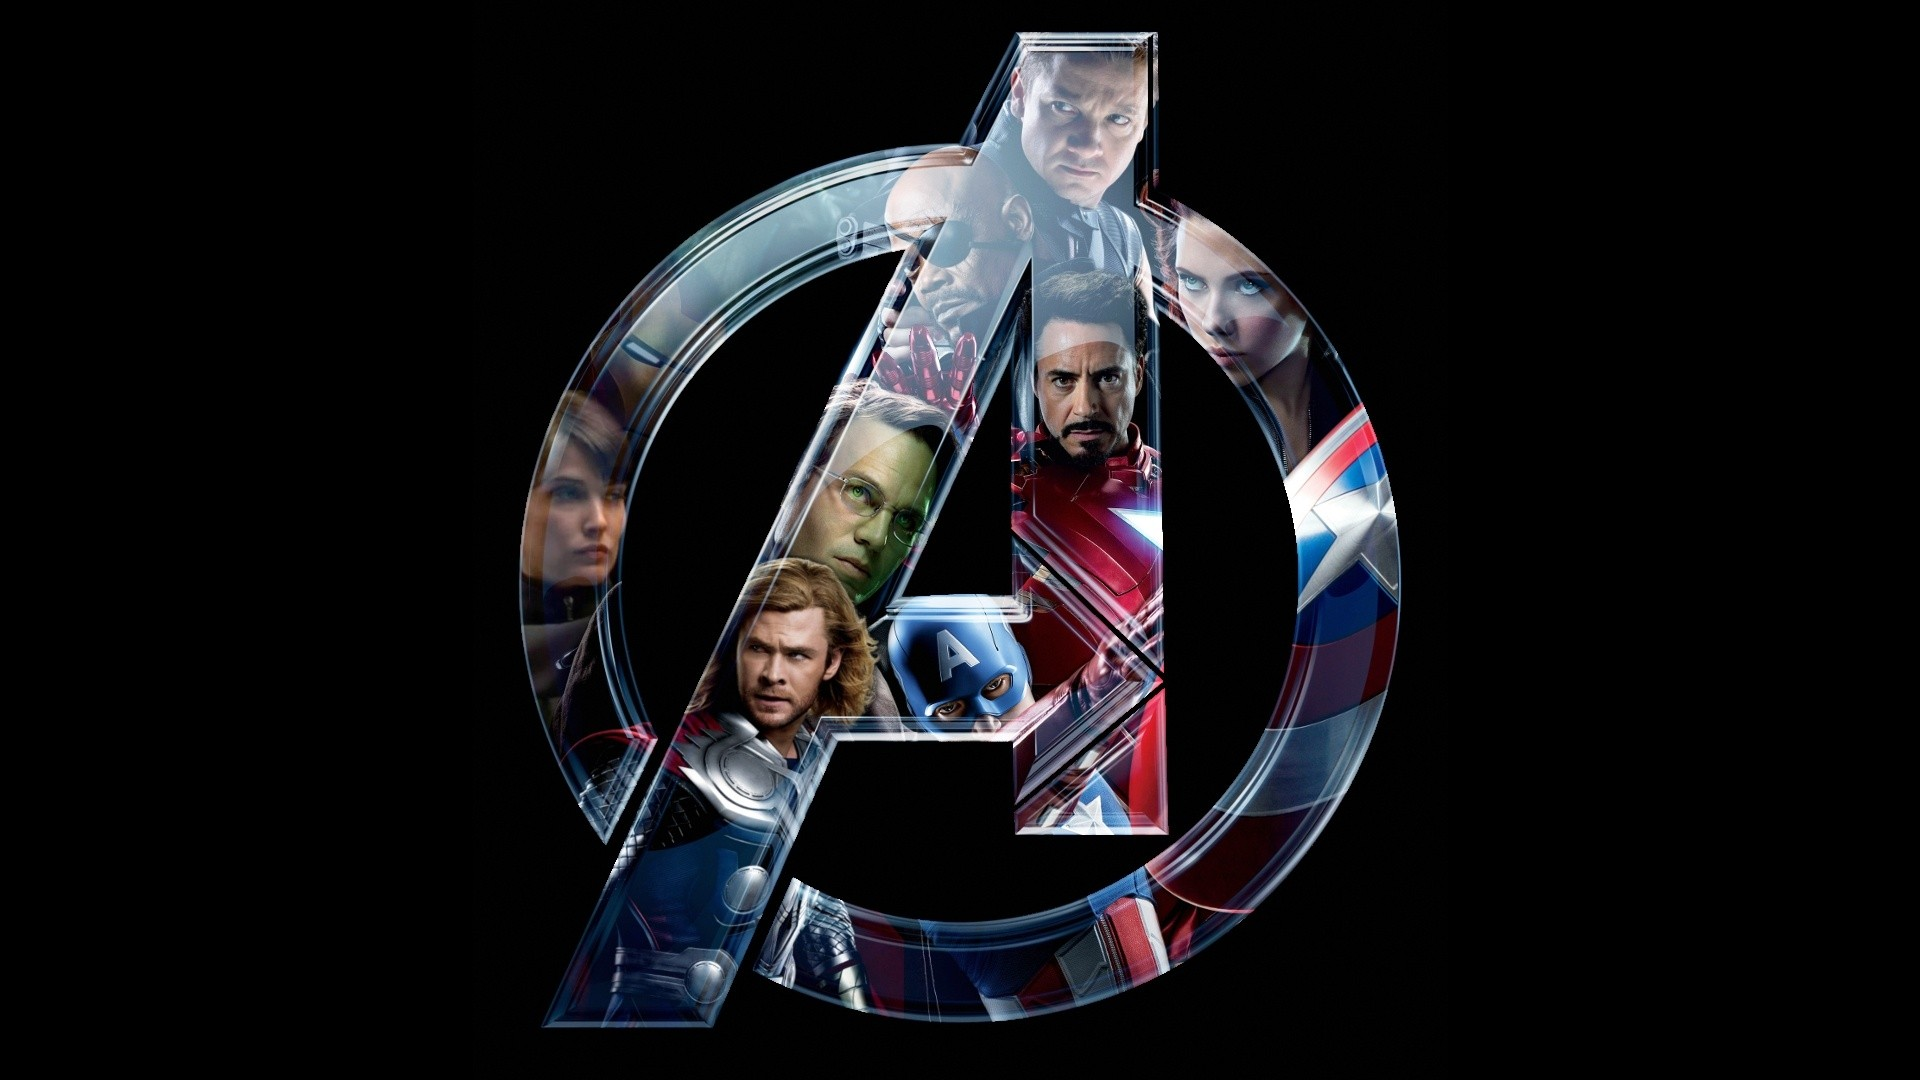 Case Design high five phone case : The Avengers poster The Avengers Photo (24746041) Fanpop